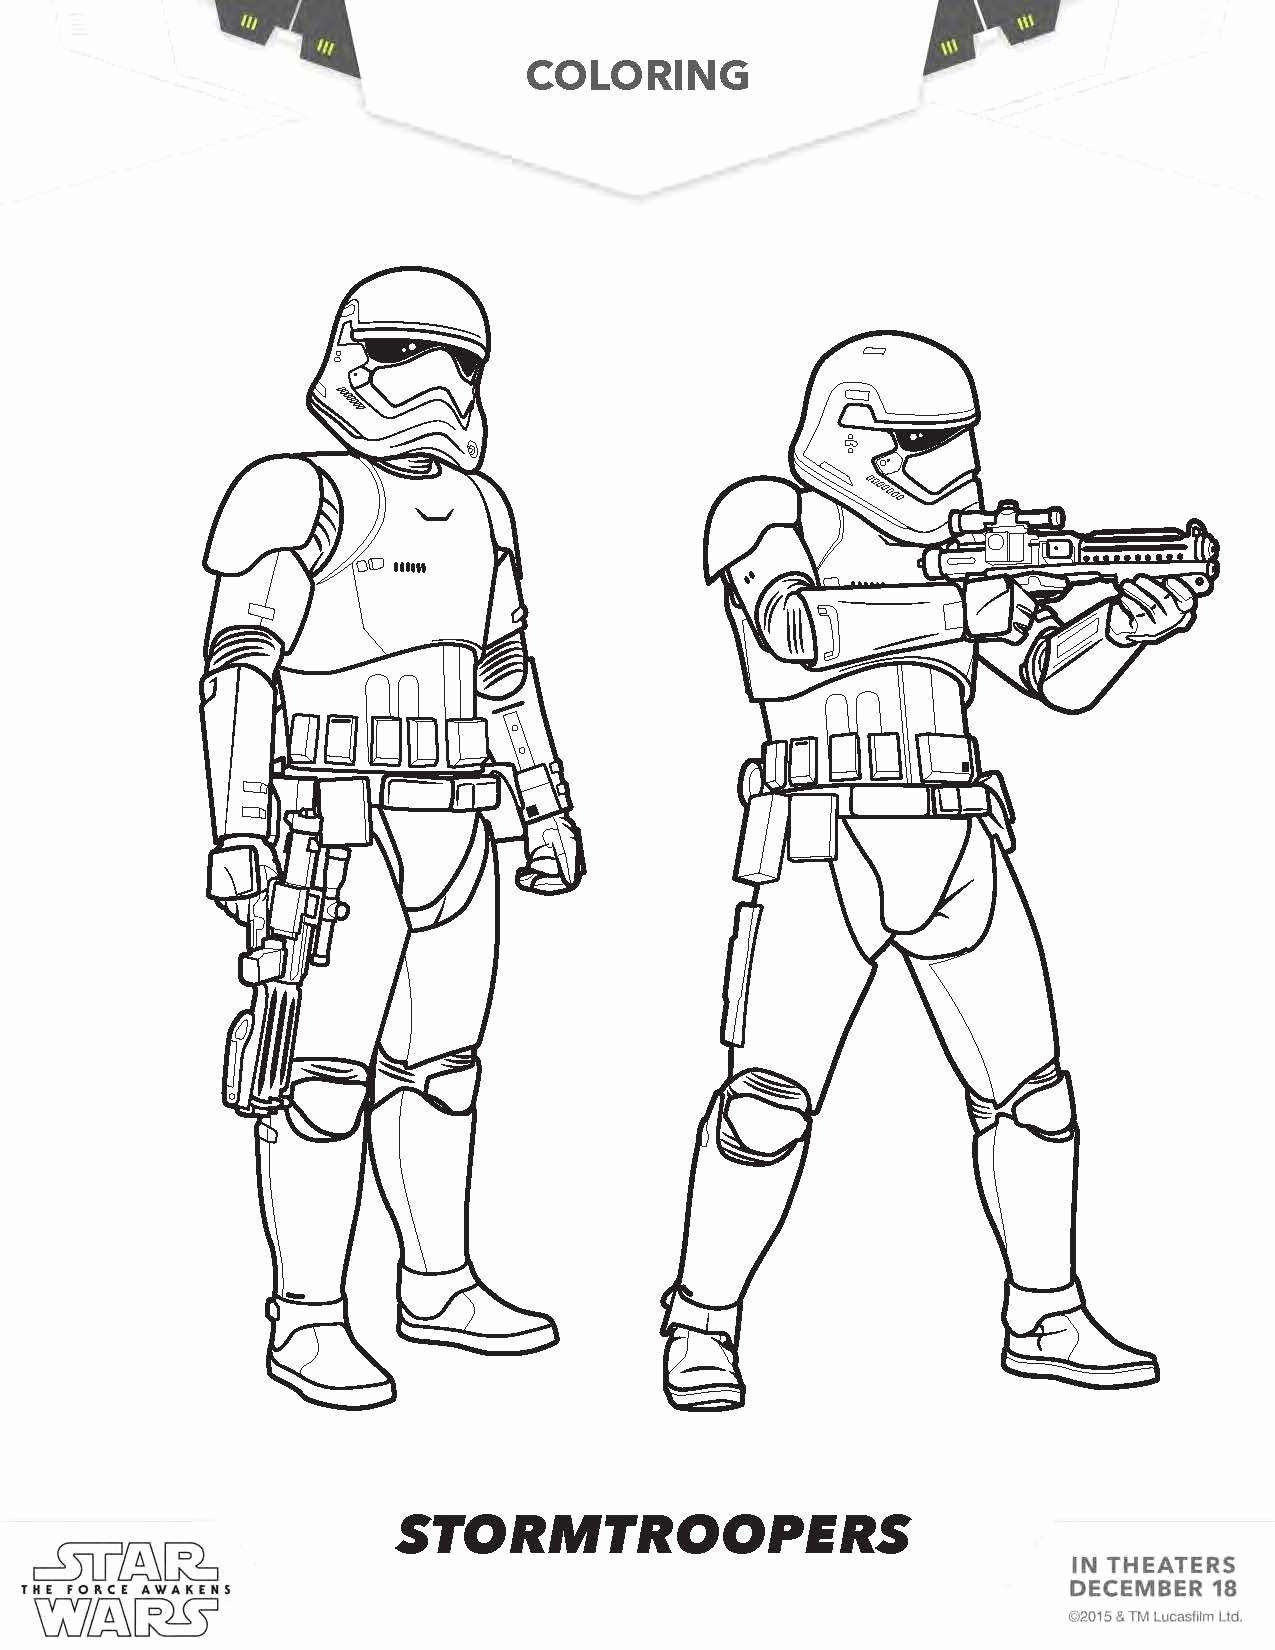 Lego Star Wars Malvorlagen Neu Coloring Pages for Boys Star Wars Free Star Wars Malvorlagen Das Neu Das Bild